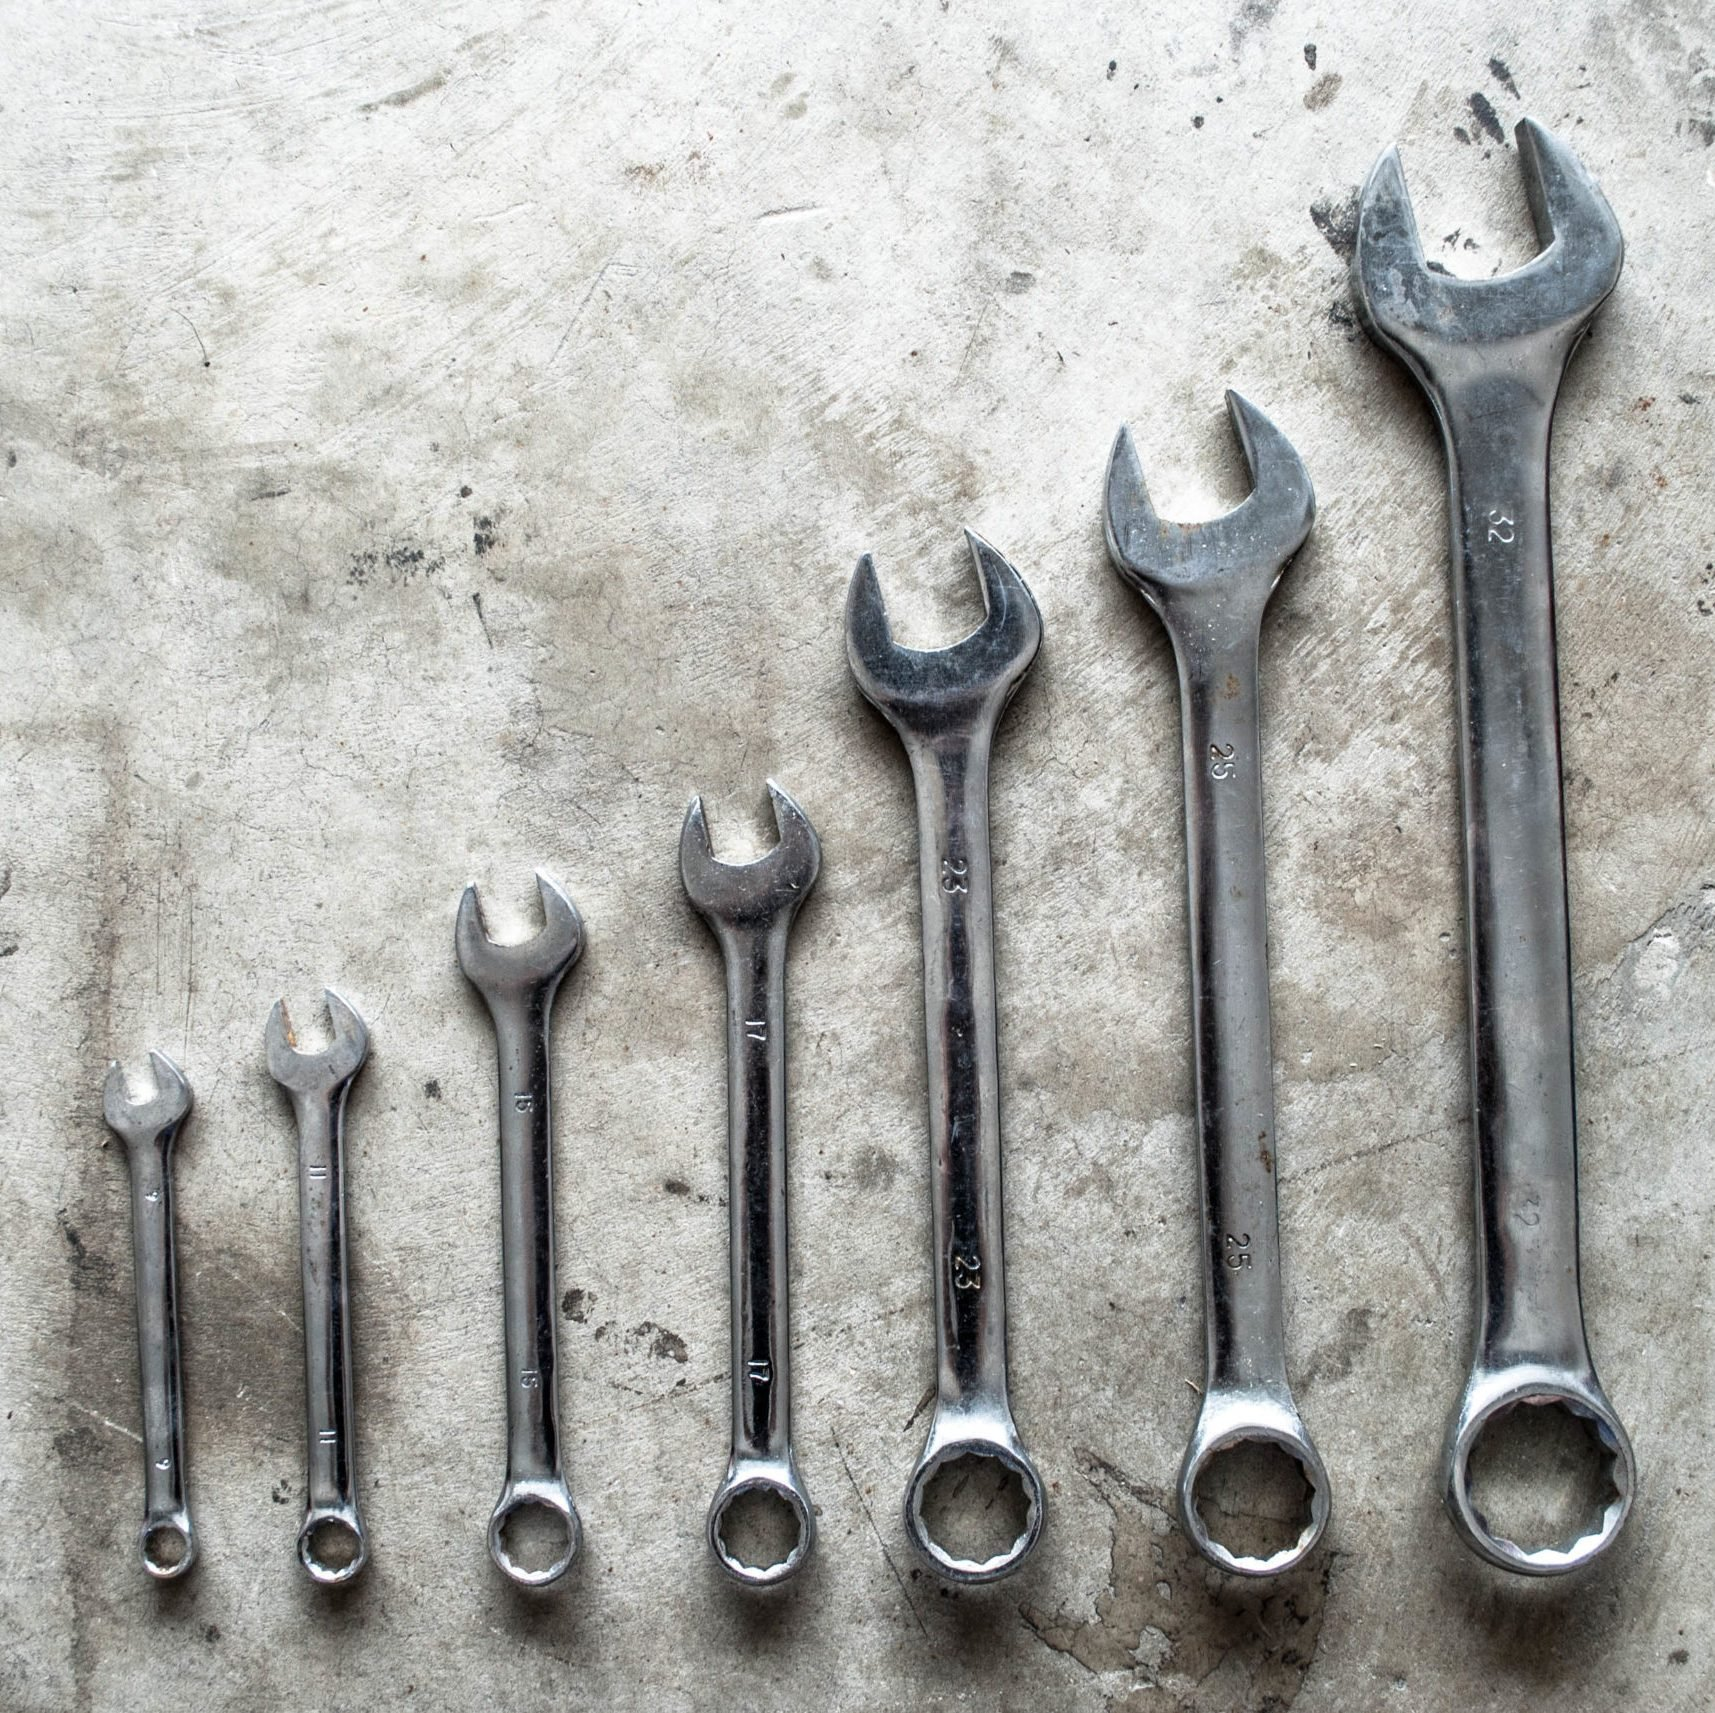 Directly Above Shot Of Wrenches On Table